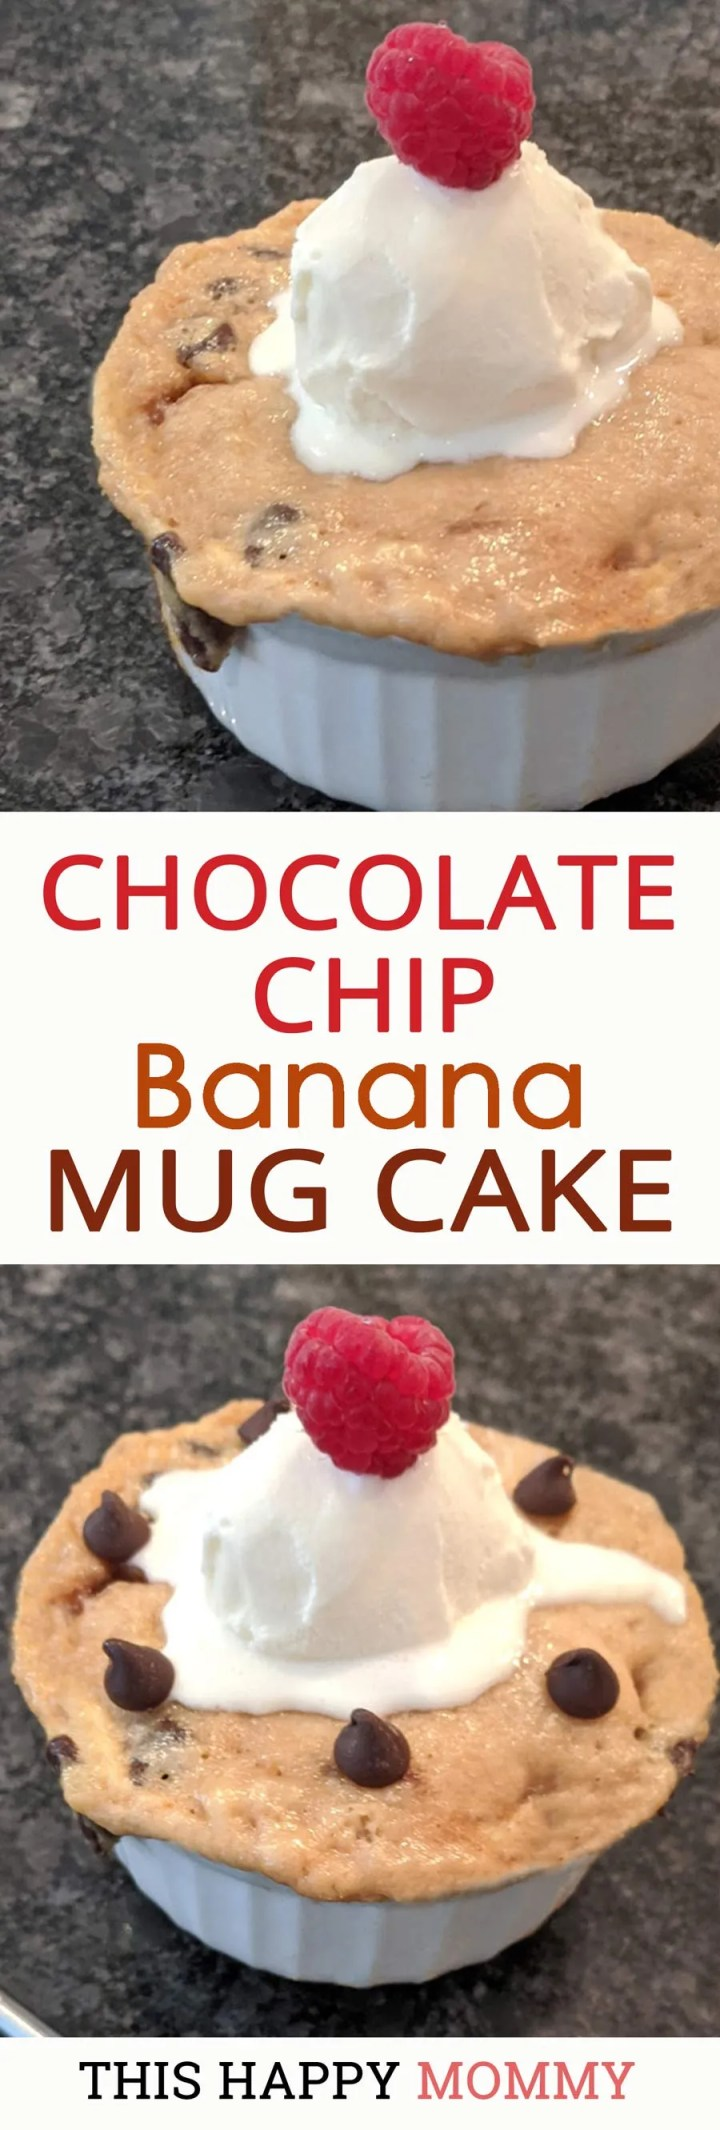 My family loves this mug cake!! If you love bananas and chocolate this is the cake for you! Chocolate Chip Banana Mug Cake is a rich, decadently chocolatey, banana cake. And it's ready in only 5 minutes.| quick and easy dessert | healthy mug cake | thishappymommy.com